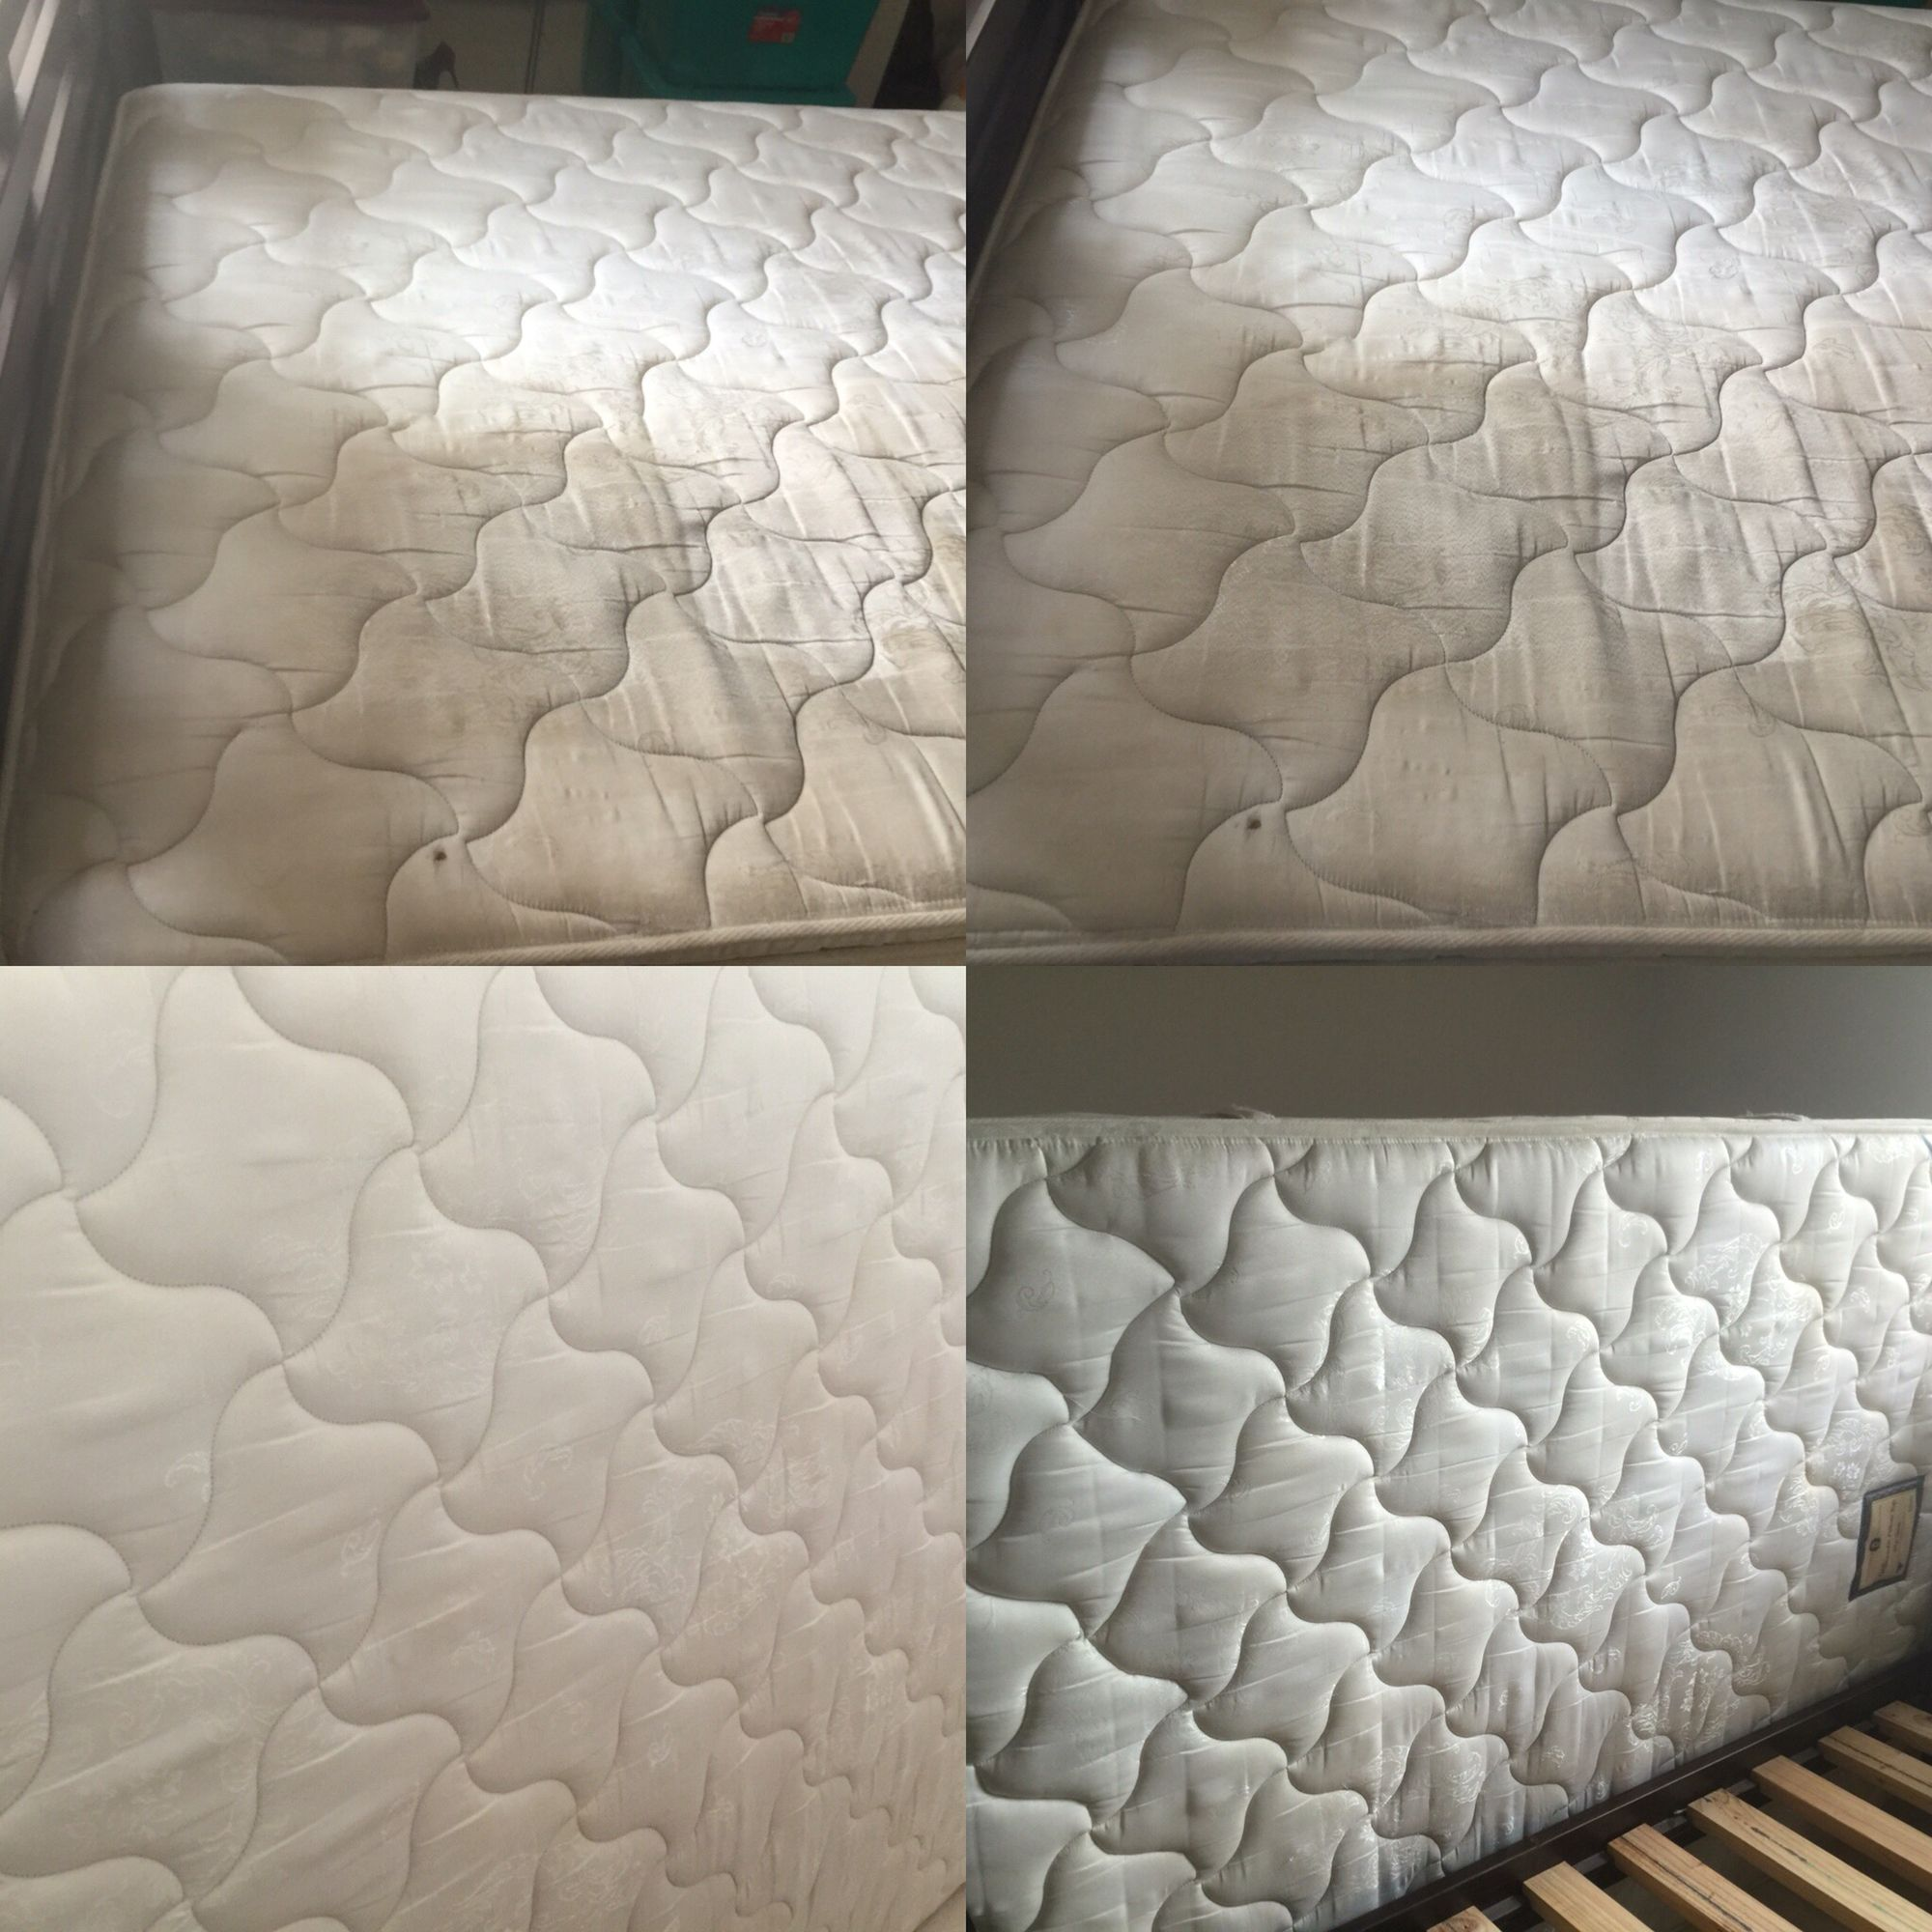 here is a mattress i steam cleaned it was heavily stained but after